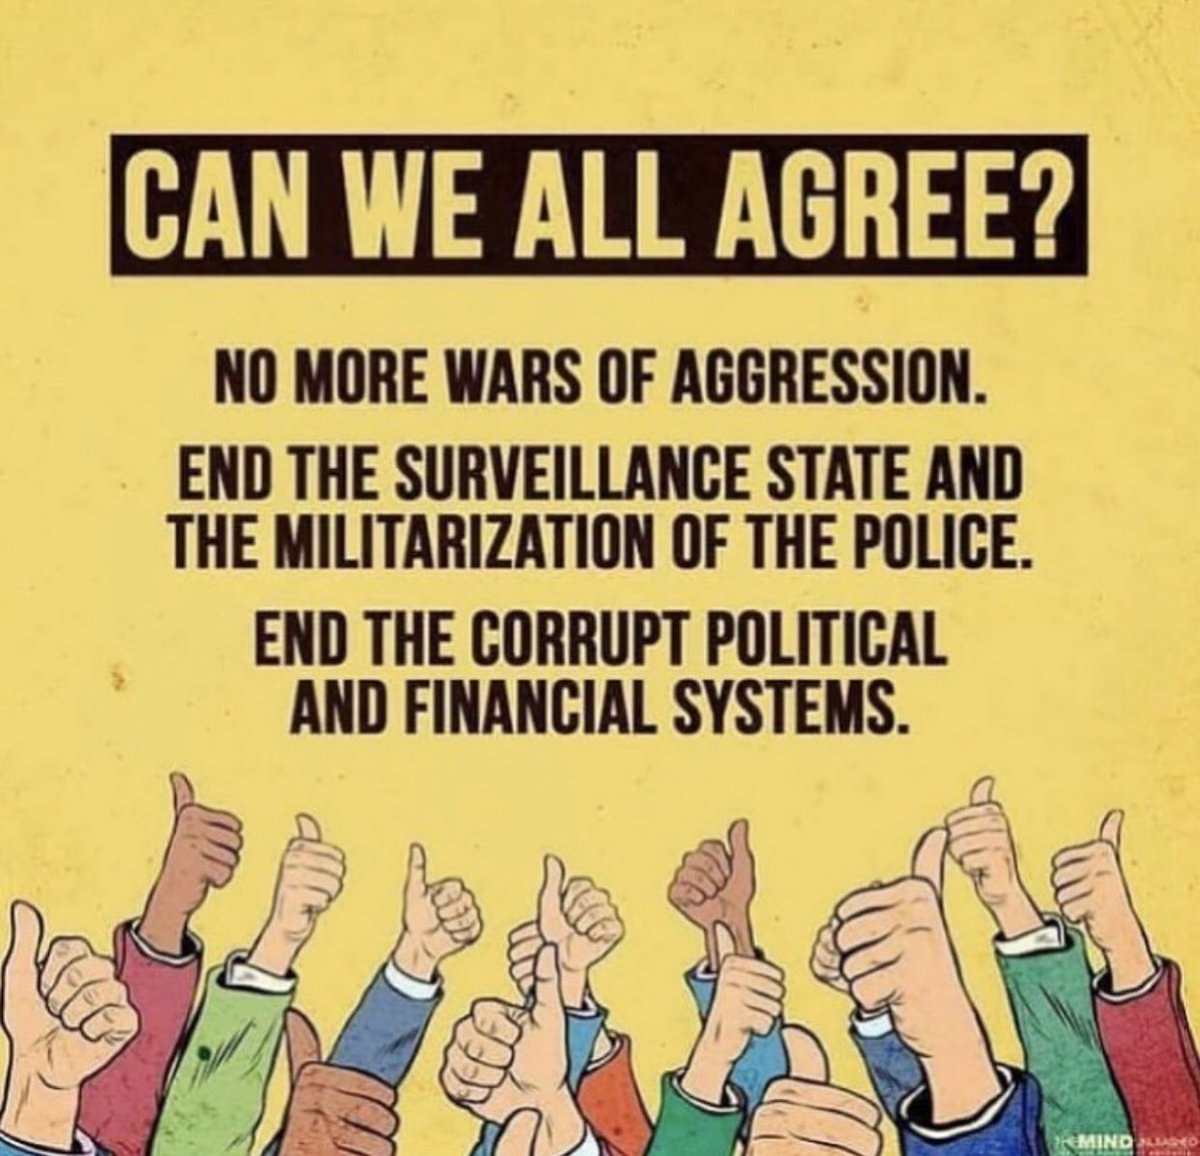 This is an important time for Libertarian ideology to be communicated. Have you been trying to start conversations or discussions about our principles with non-Libertarians?  #LarrySharpe #libertarian #liberty #nomorewar #militarizedpolice